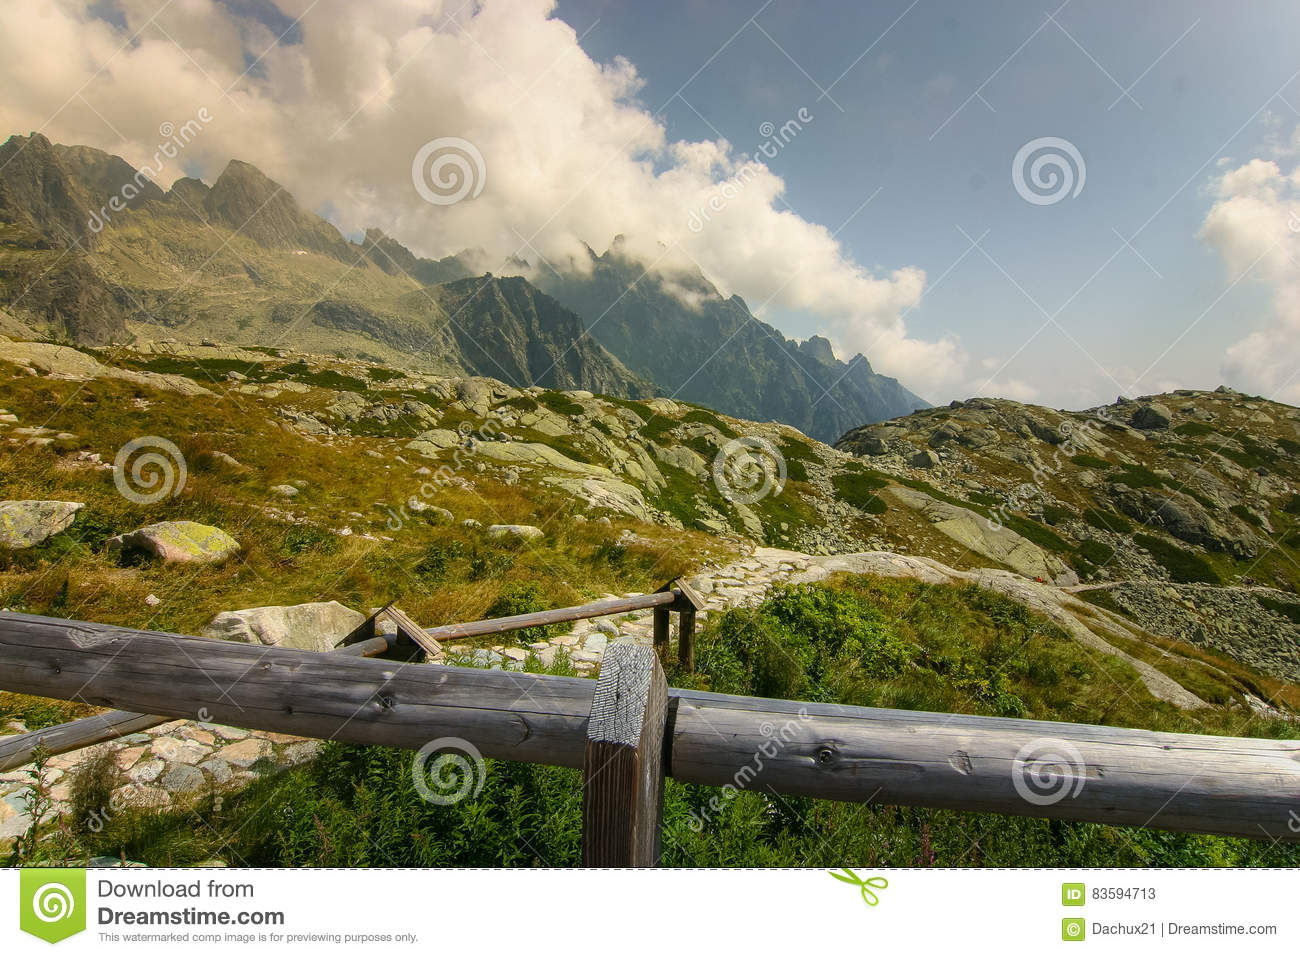 A beautiful mountain landscape above tree line